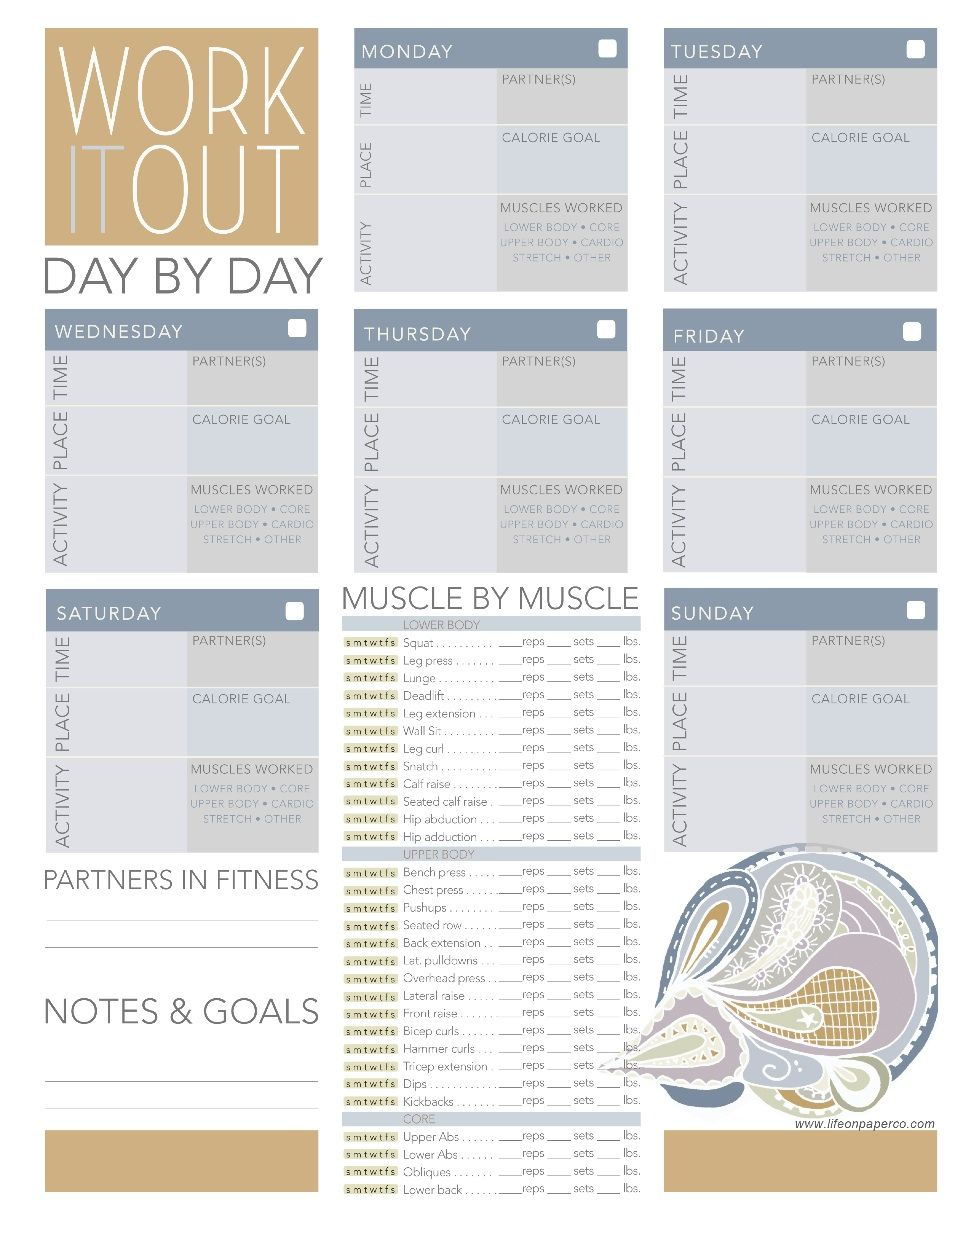 worksheet Life Plan Worksheet 10 images about weight loss journey on pinterest rick warren free weights and food journal printable